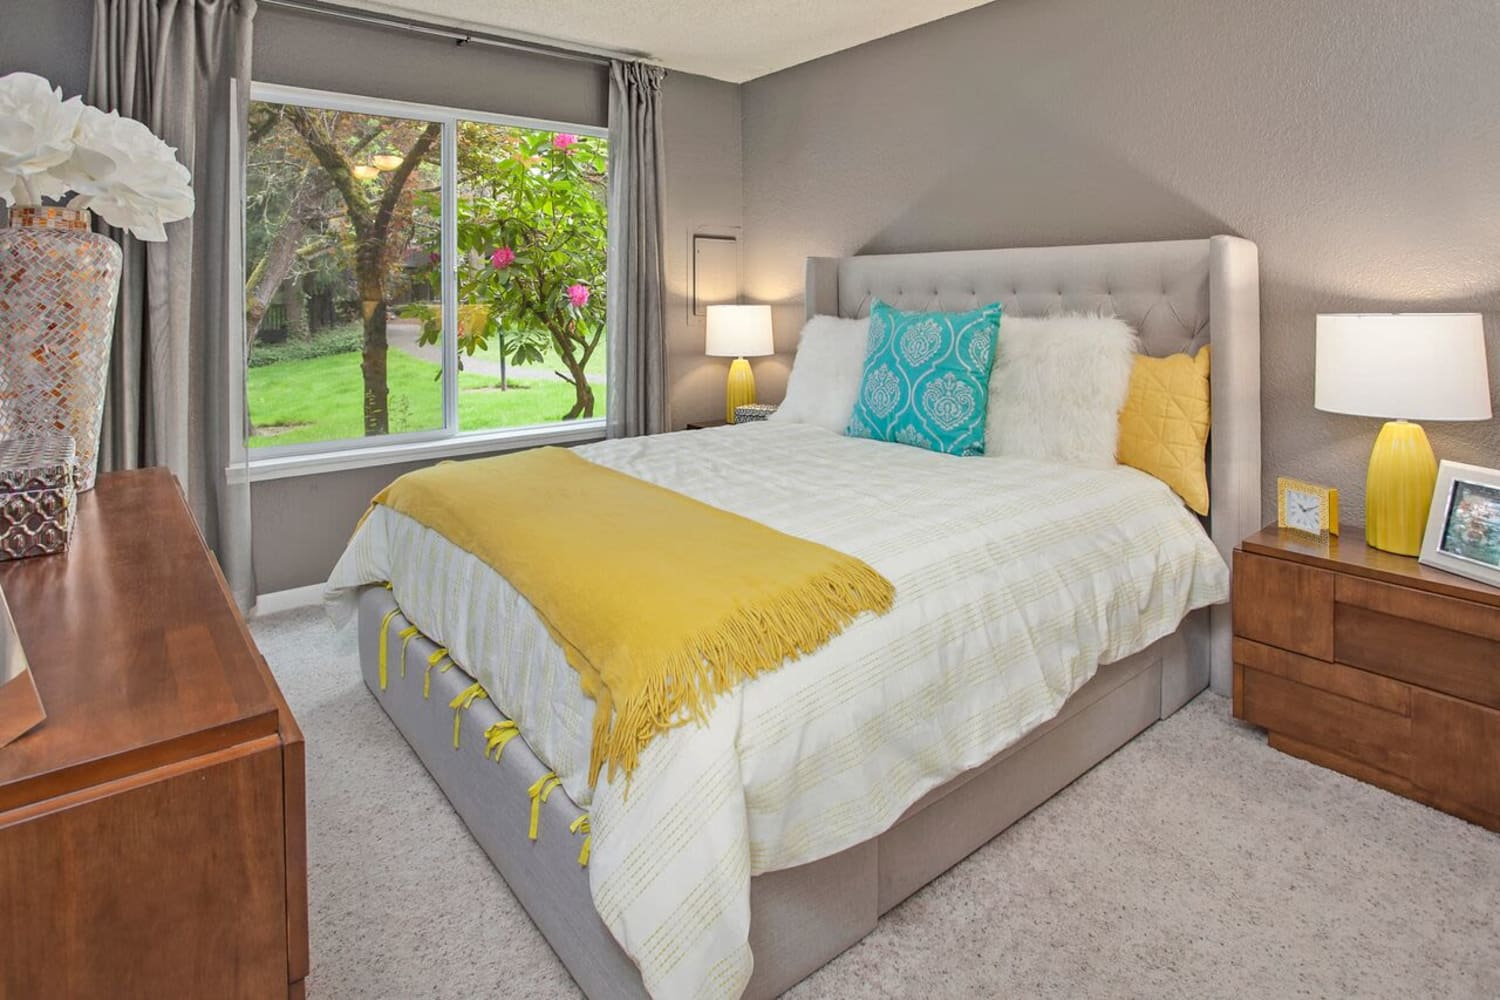 Enjoy relaxing bedrooms at The VUE in Kirkland, Washington